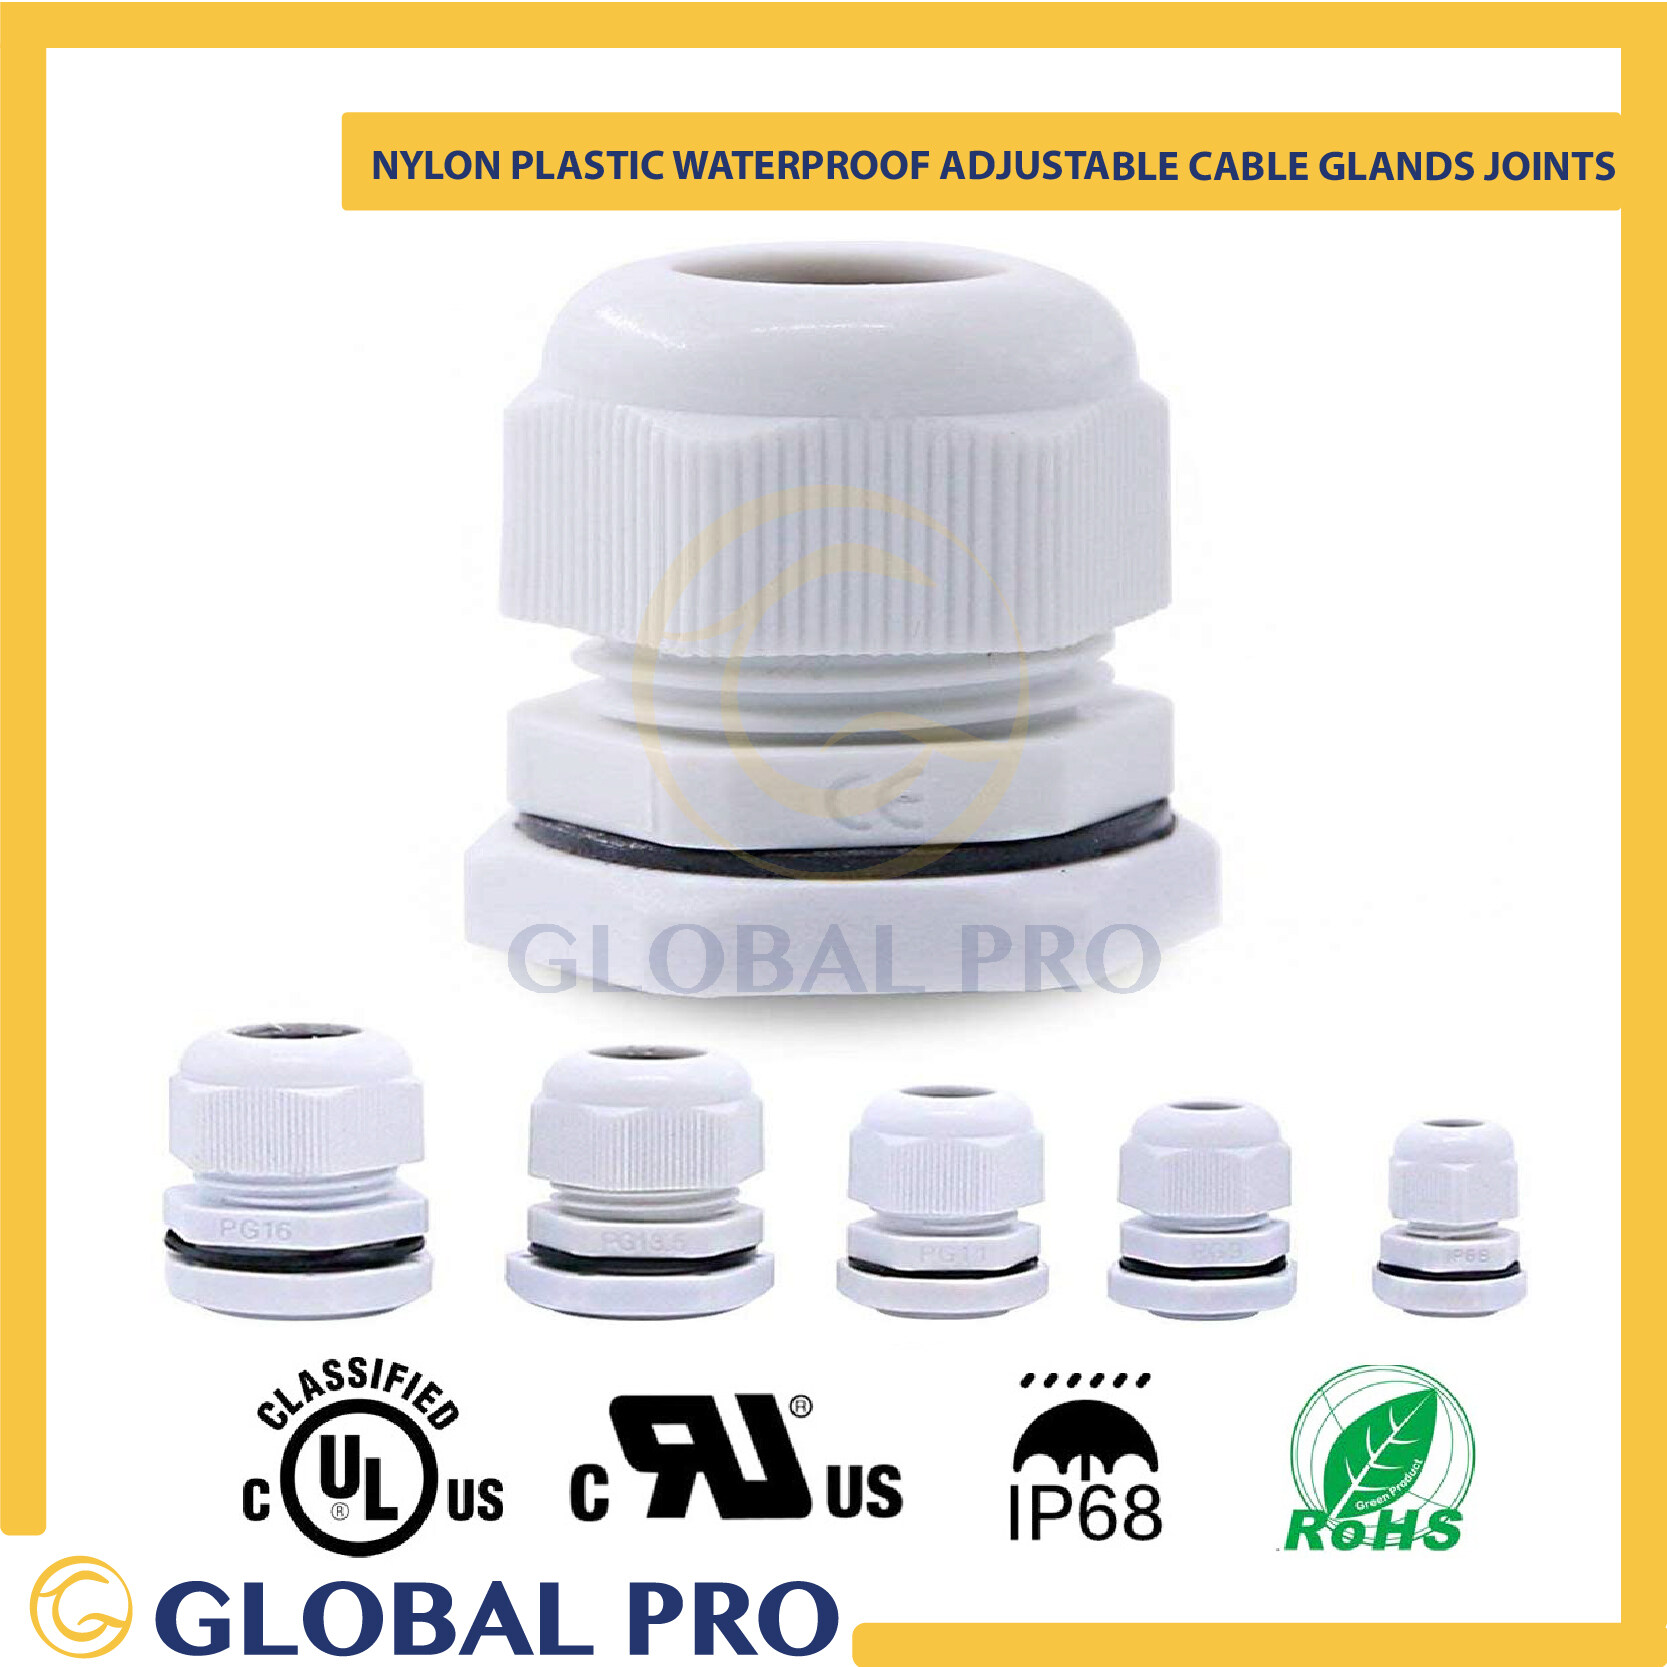 {10PCS} IP68 Nylon Plastic Waterproof Adjustable Cable Glands Joints  White Cord/ Wire Connector Fitting PG 7,9,11,13.5,16